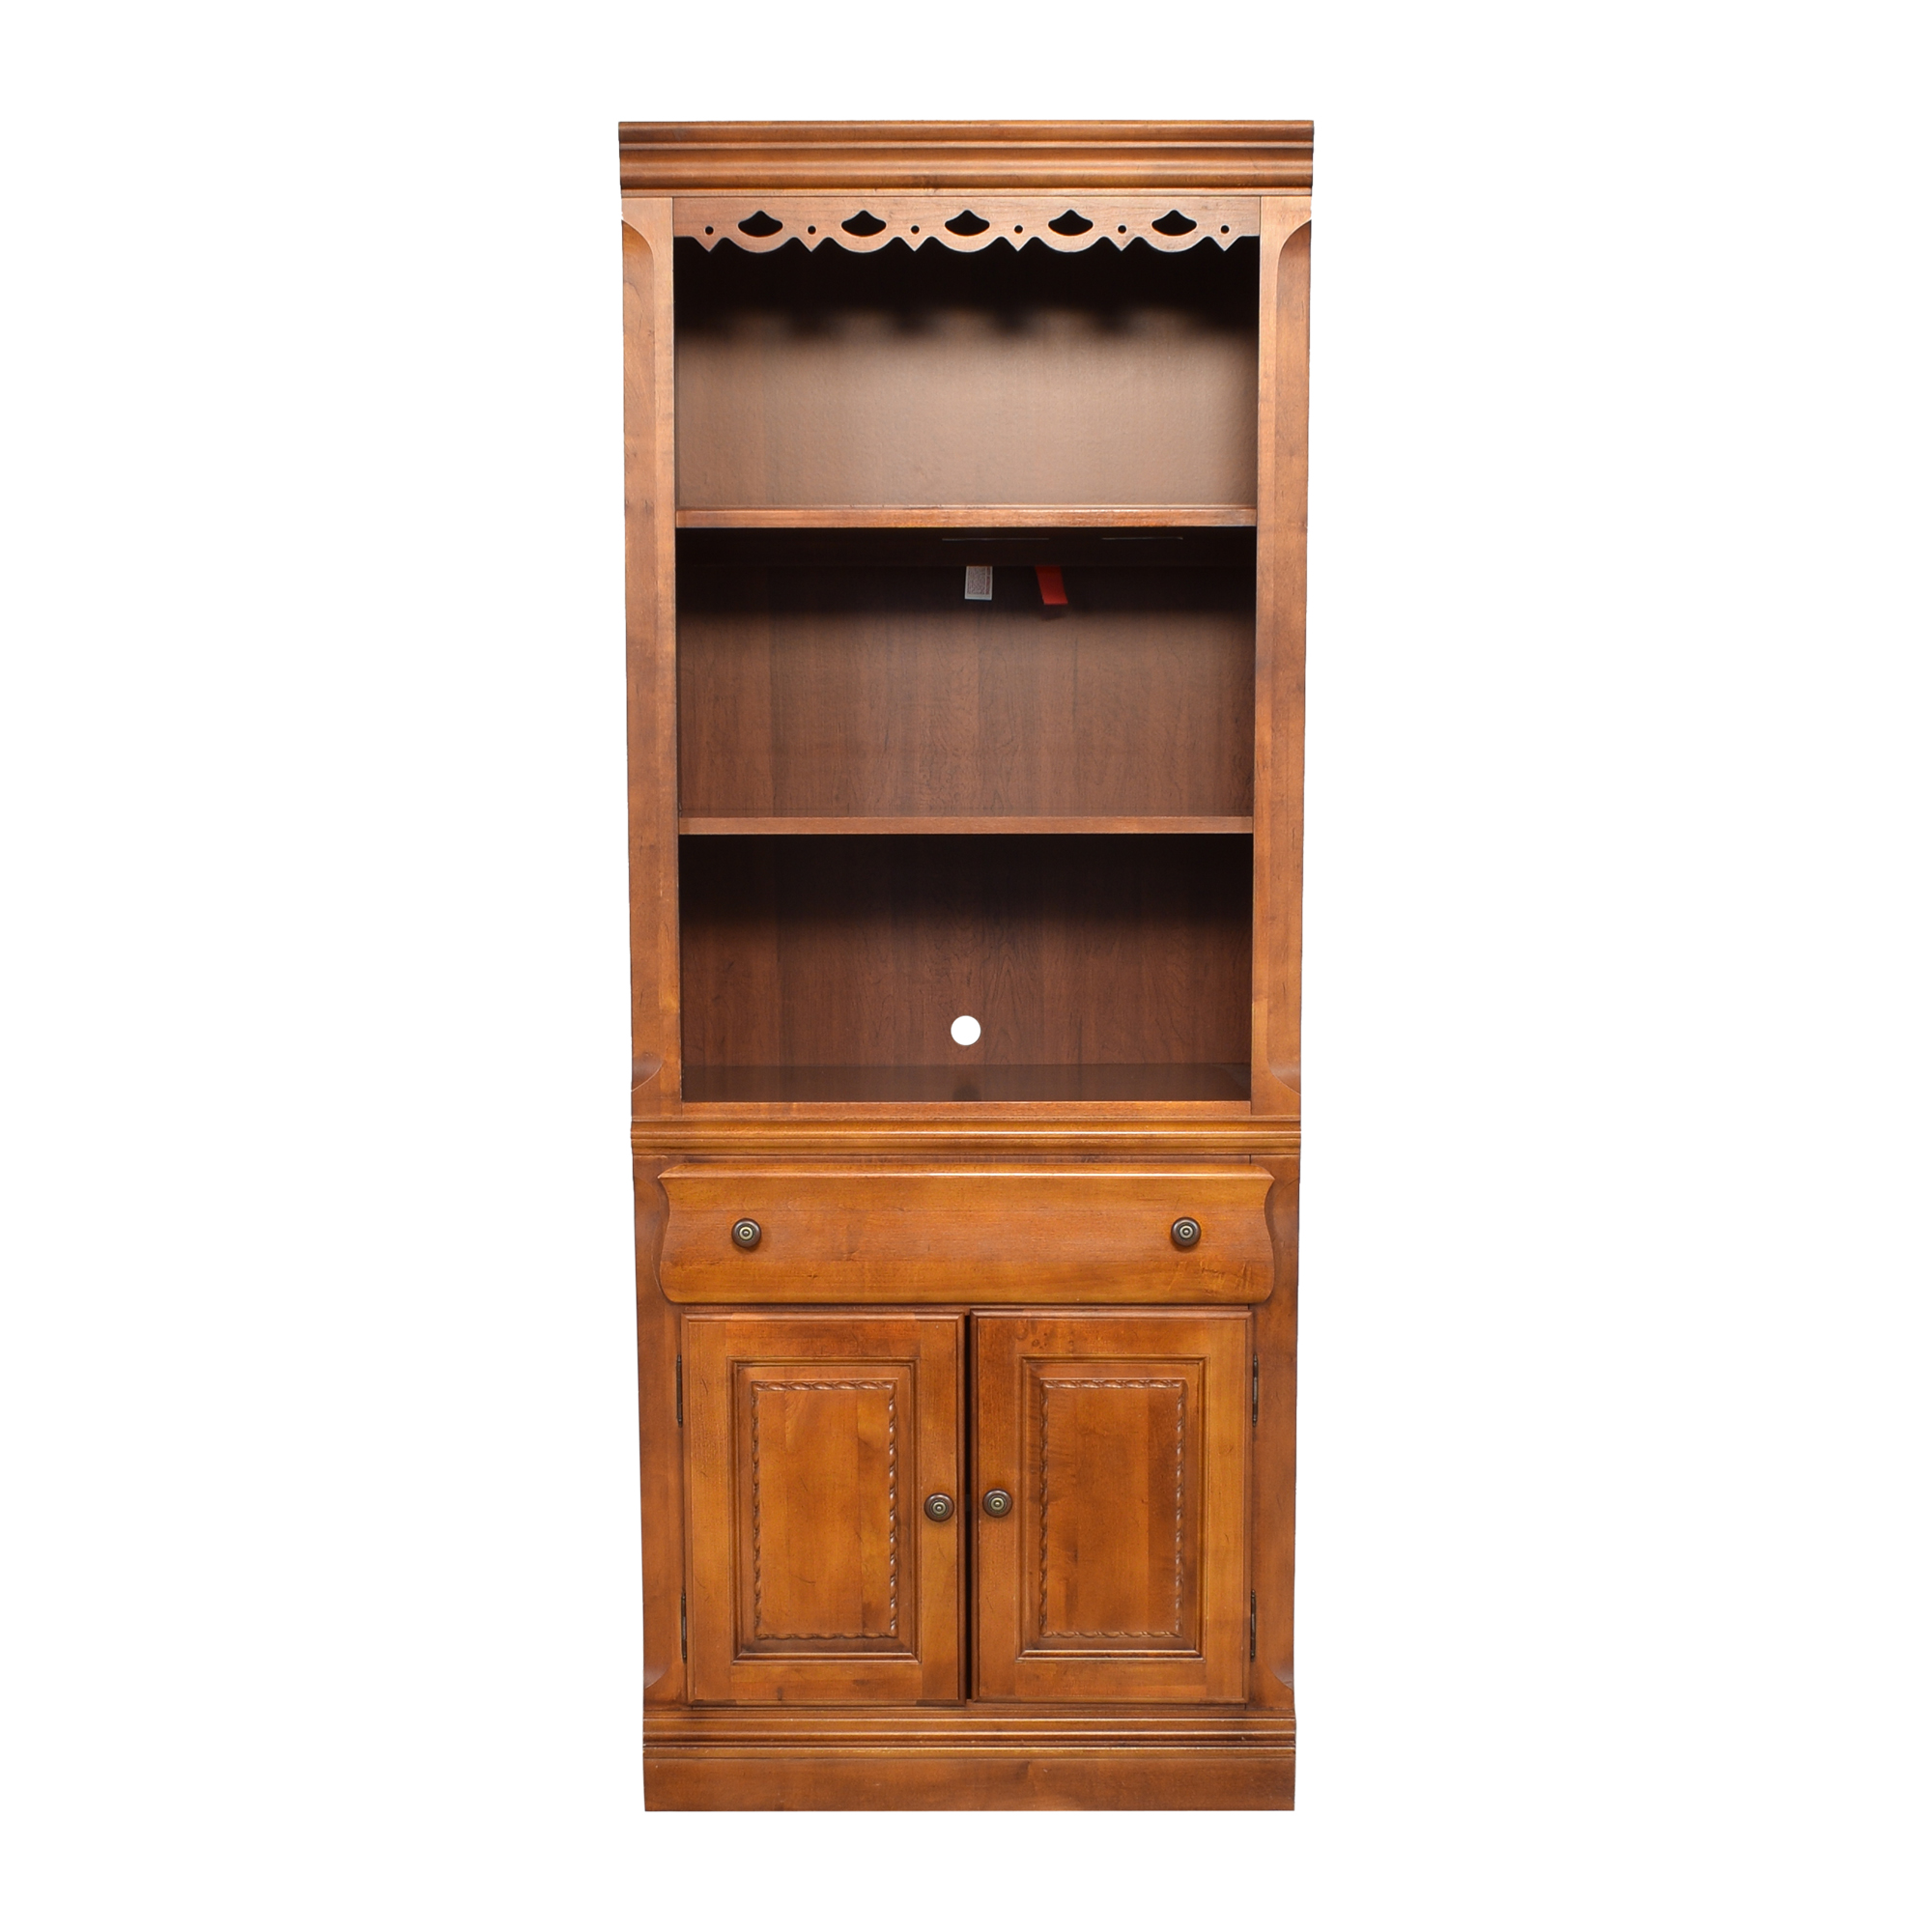 Broyhill Furniture Lighted Bookcase / Bookcases & Shelving